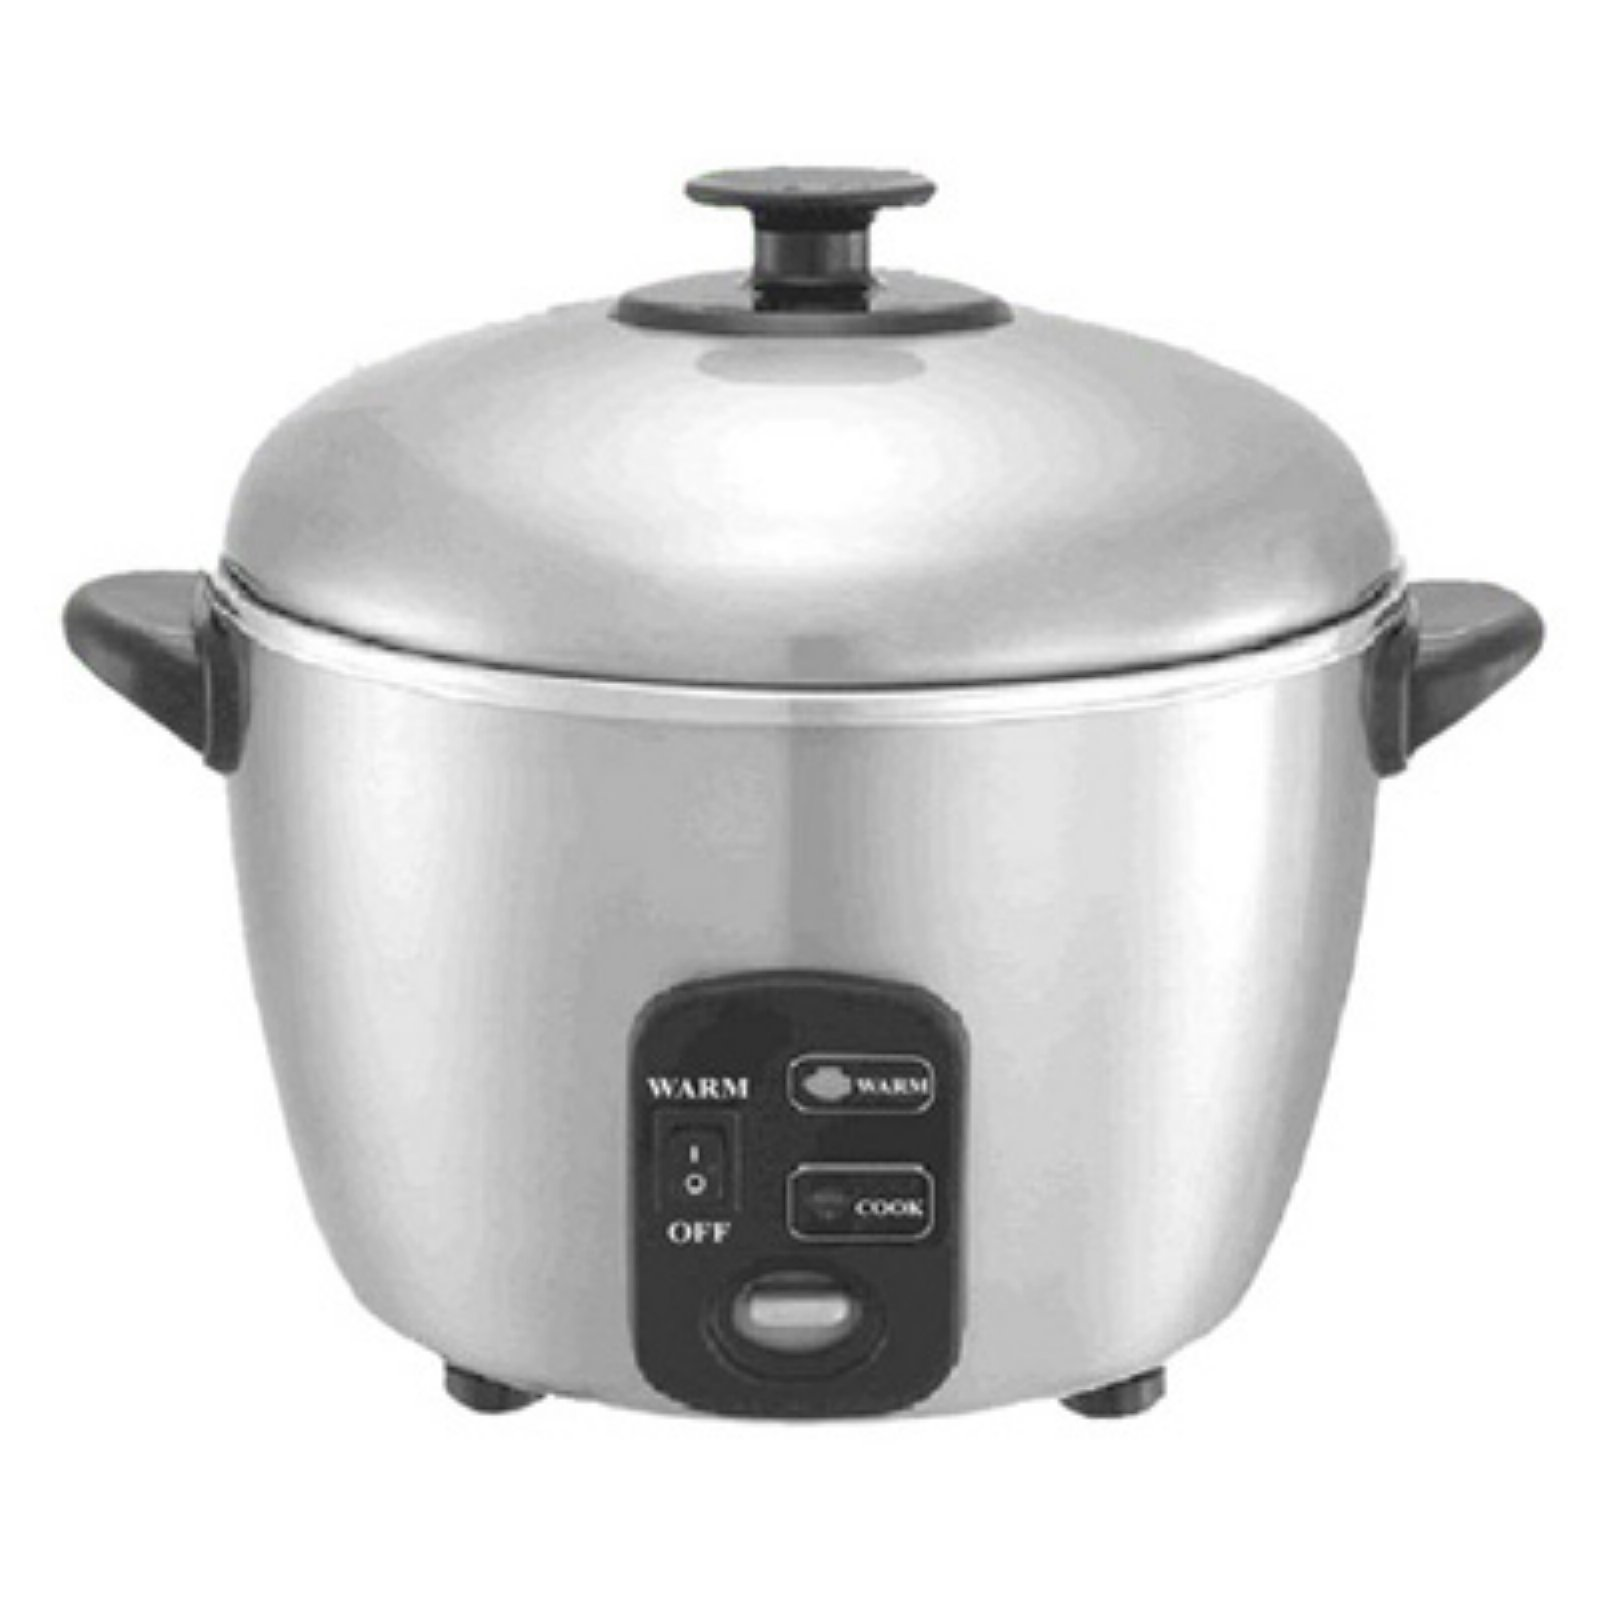 Sunpentown SC-887 6 Cup Stainless Steel Rice Cooker and Steamer